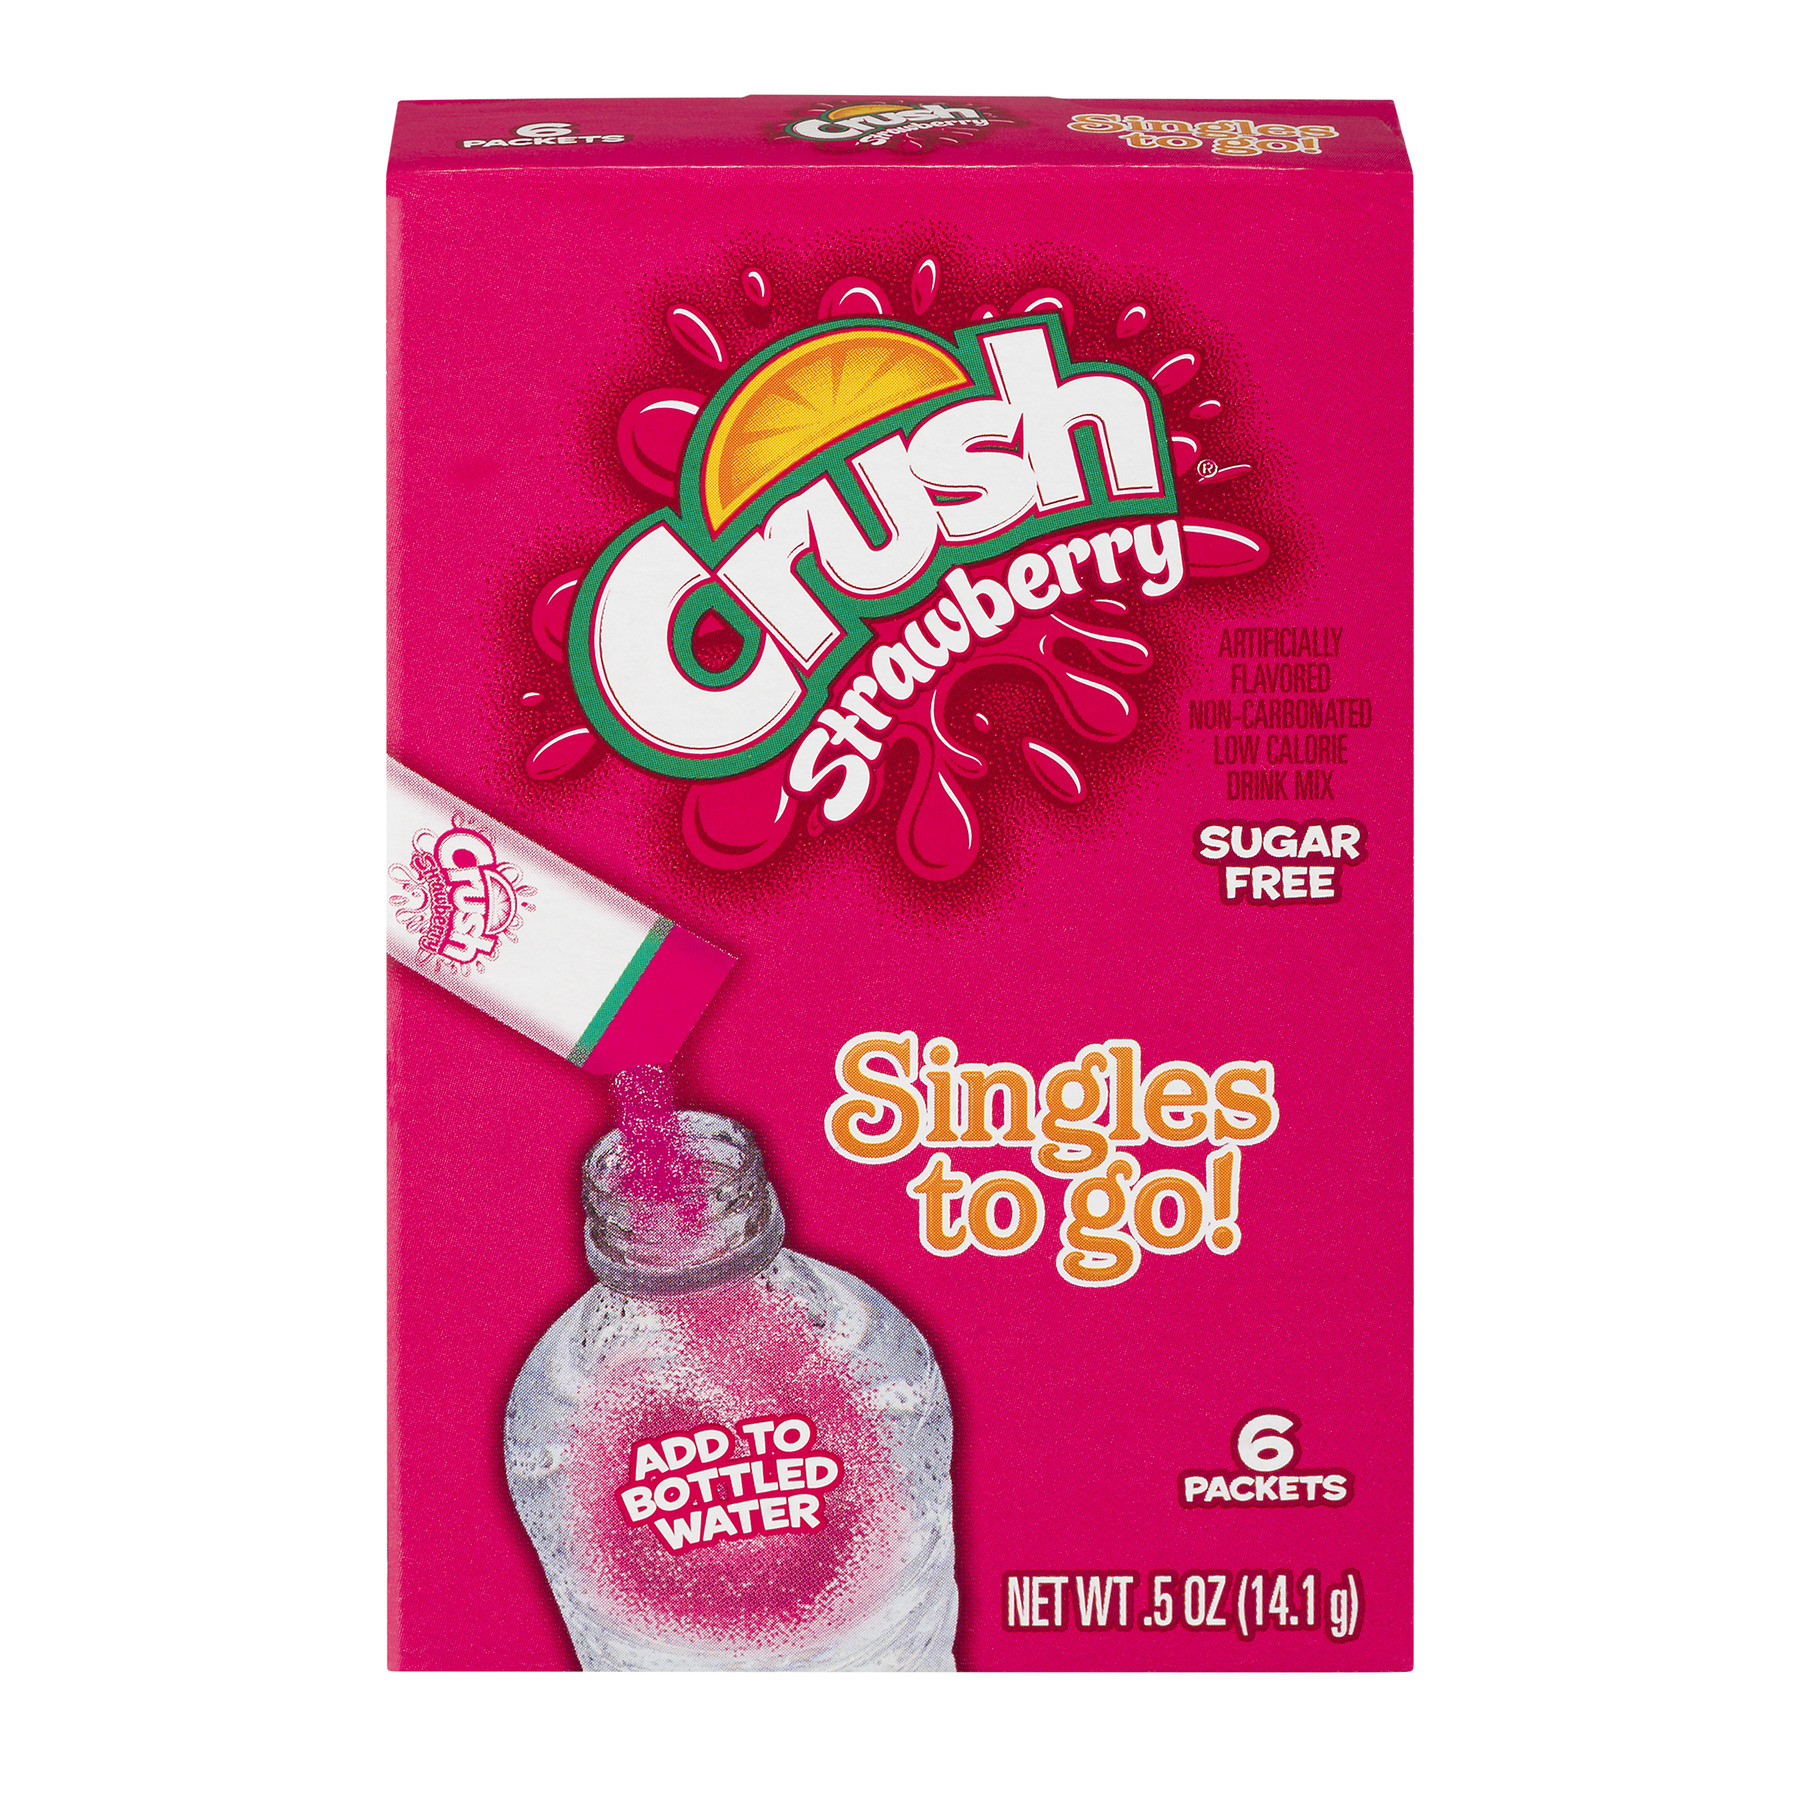 Crush Singles To Go! Low Calorie Drink Mix Sugar Free Strawberry - 6 PK, 0.5 OZ, 12 BOXES